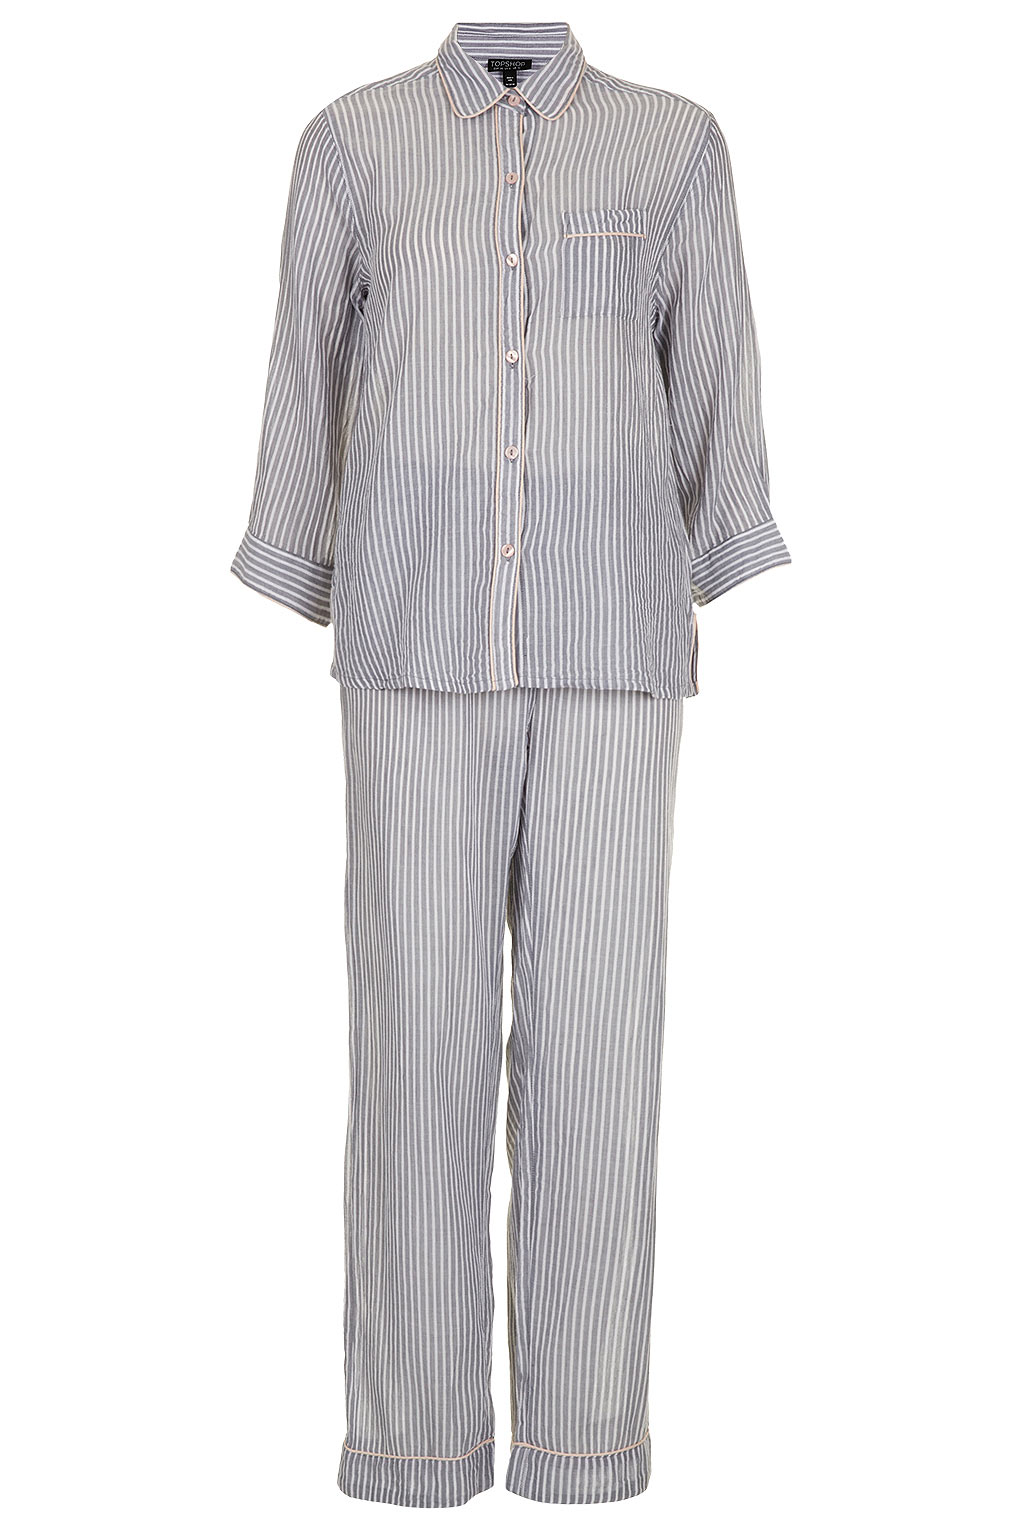 TOPSHOP Striped Piped Pyjama Set in Gray - Lyst f0460c228